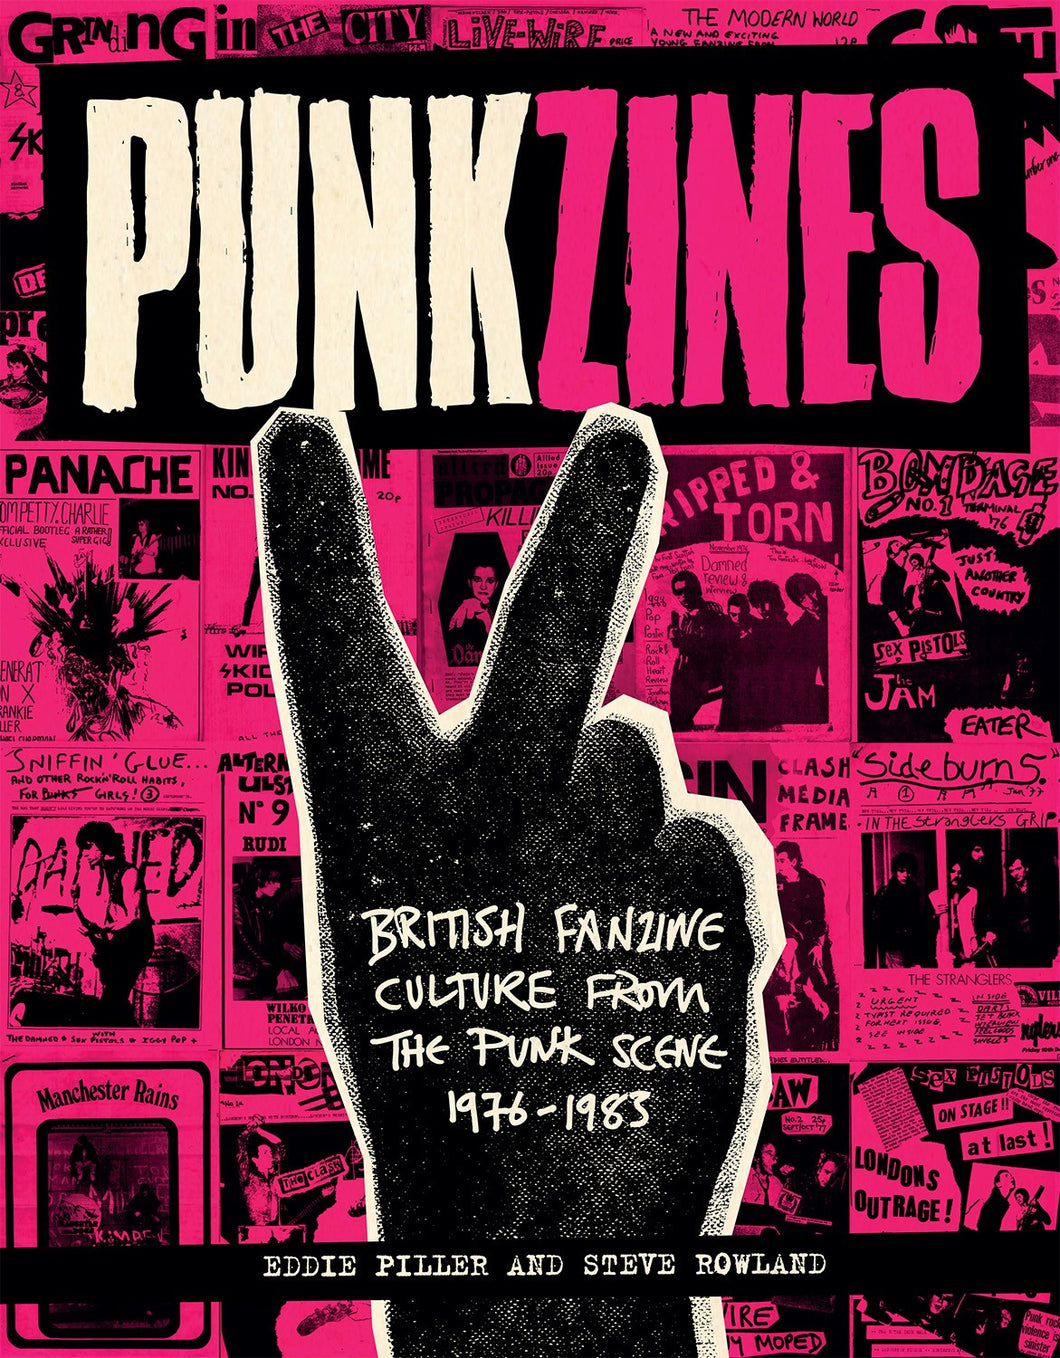 Punkzines: Fanzine Culture from the Punk Scene - Published on 8th April 2021